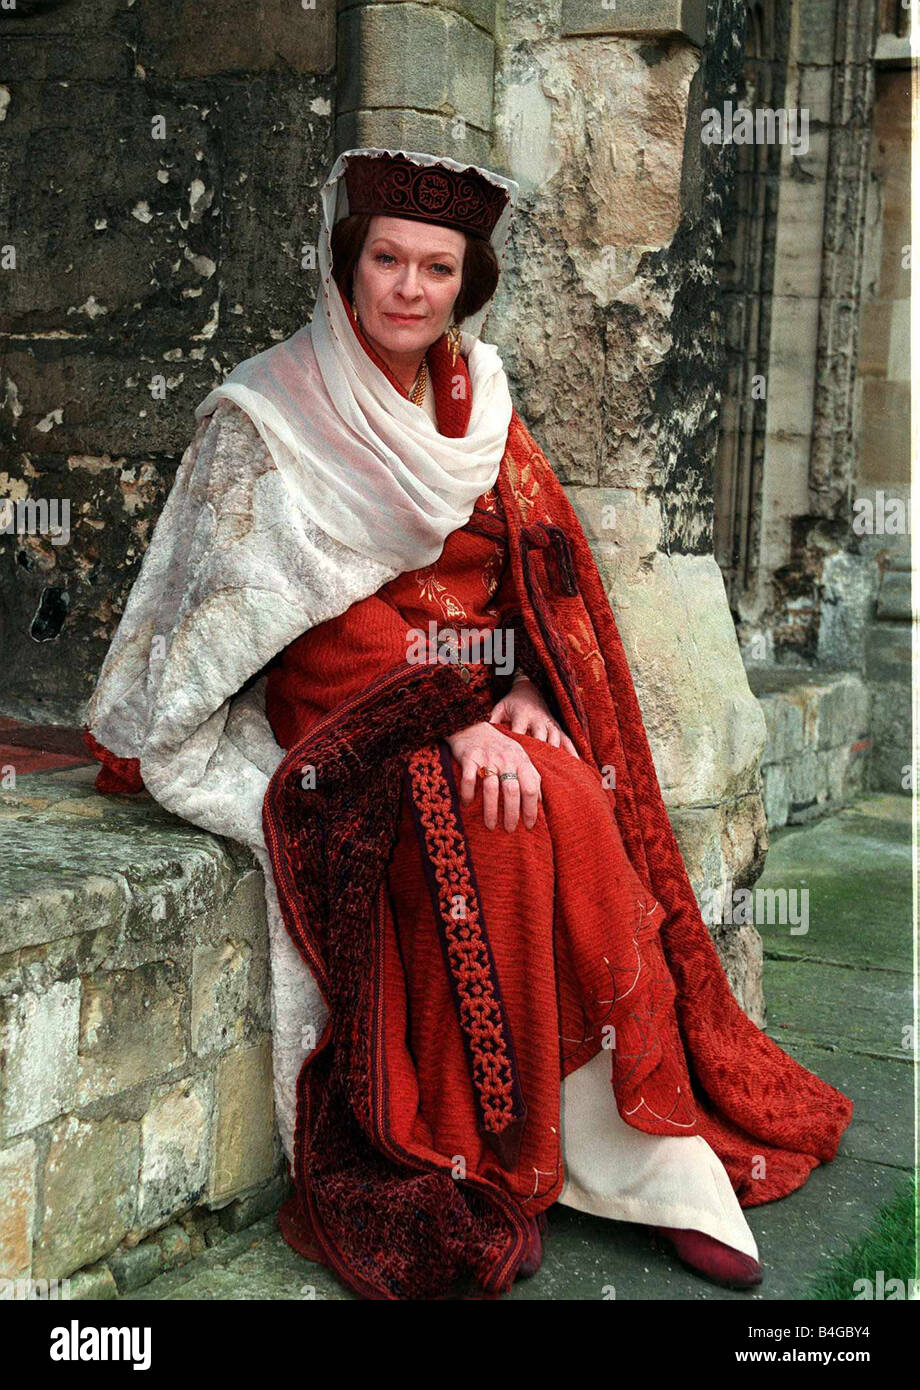 janet suzman hot